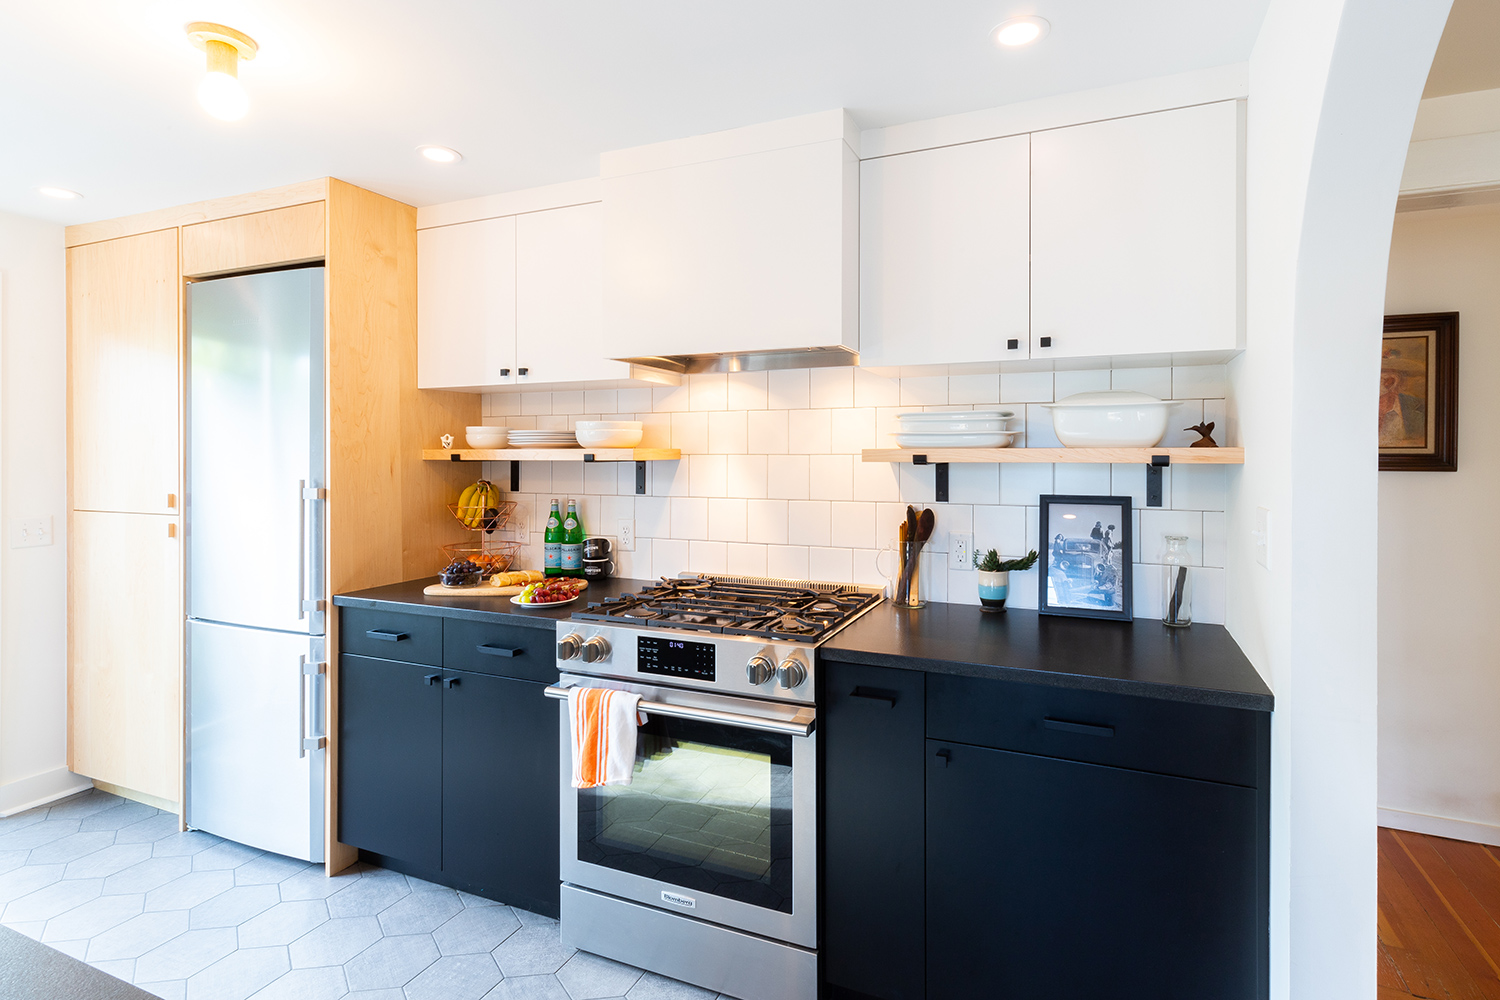 Rose City Remodel    click  to view more photos